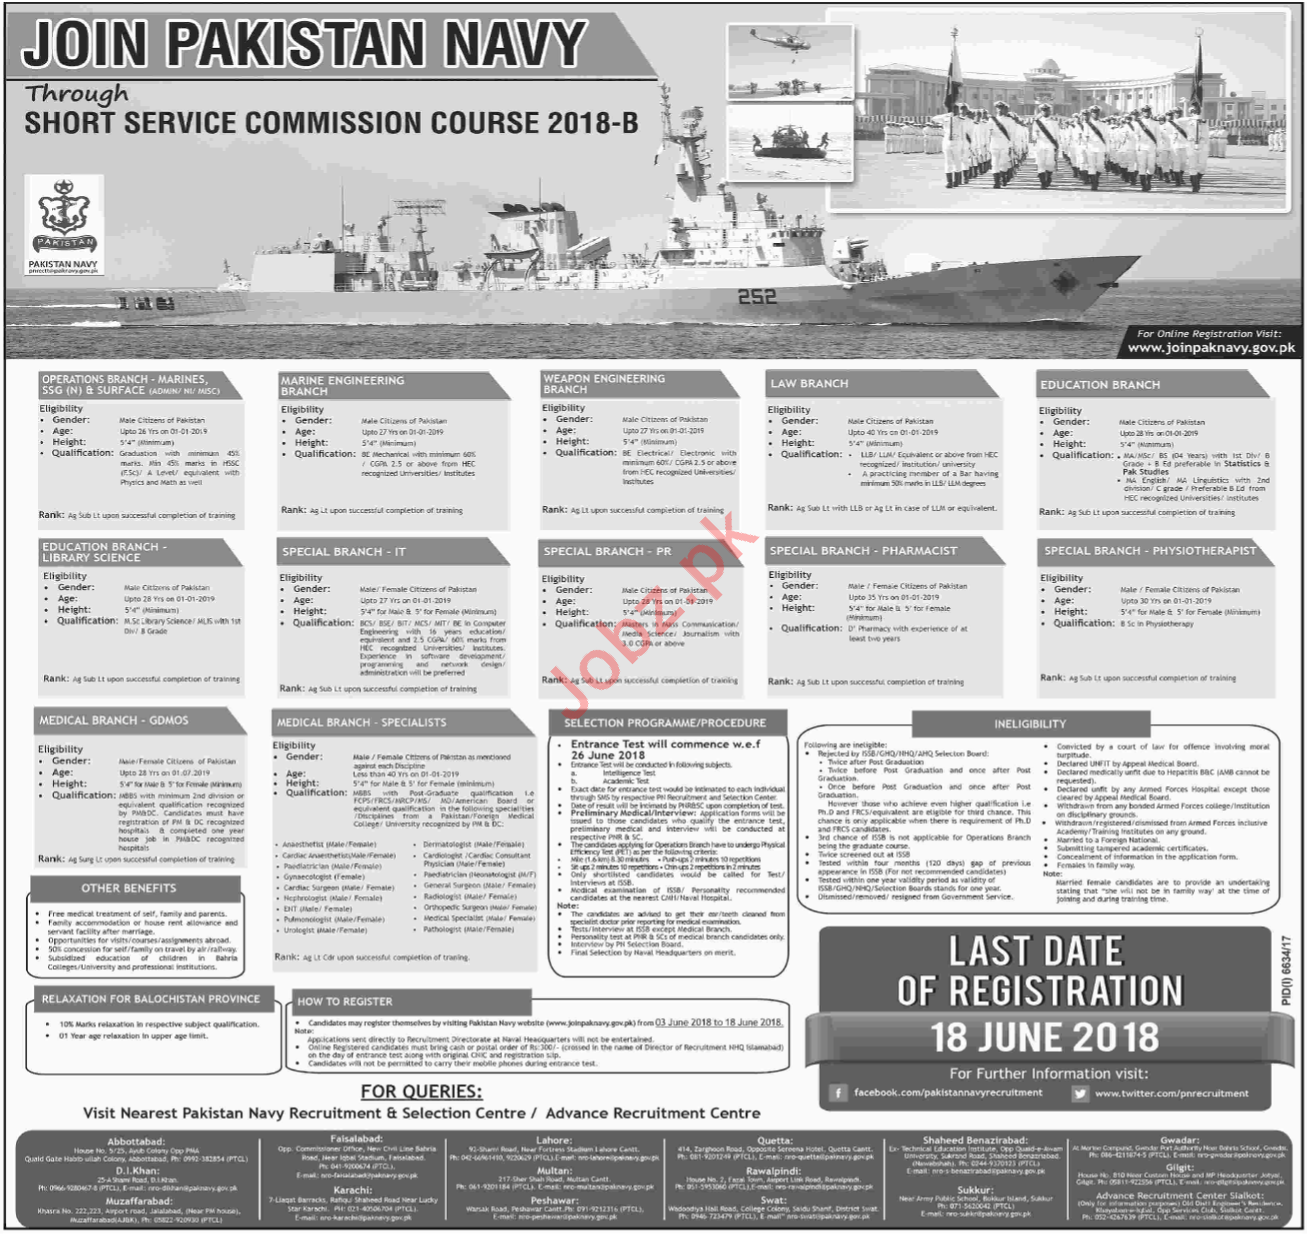 Join Pakistan Navy through short Service Commission 2018 B